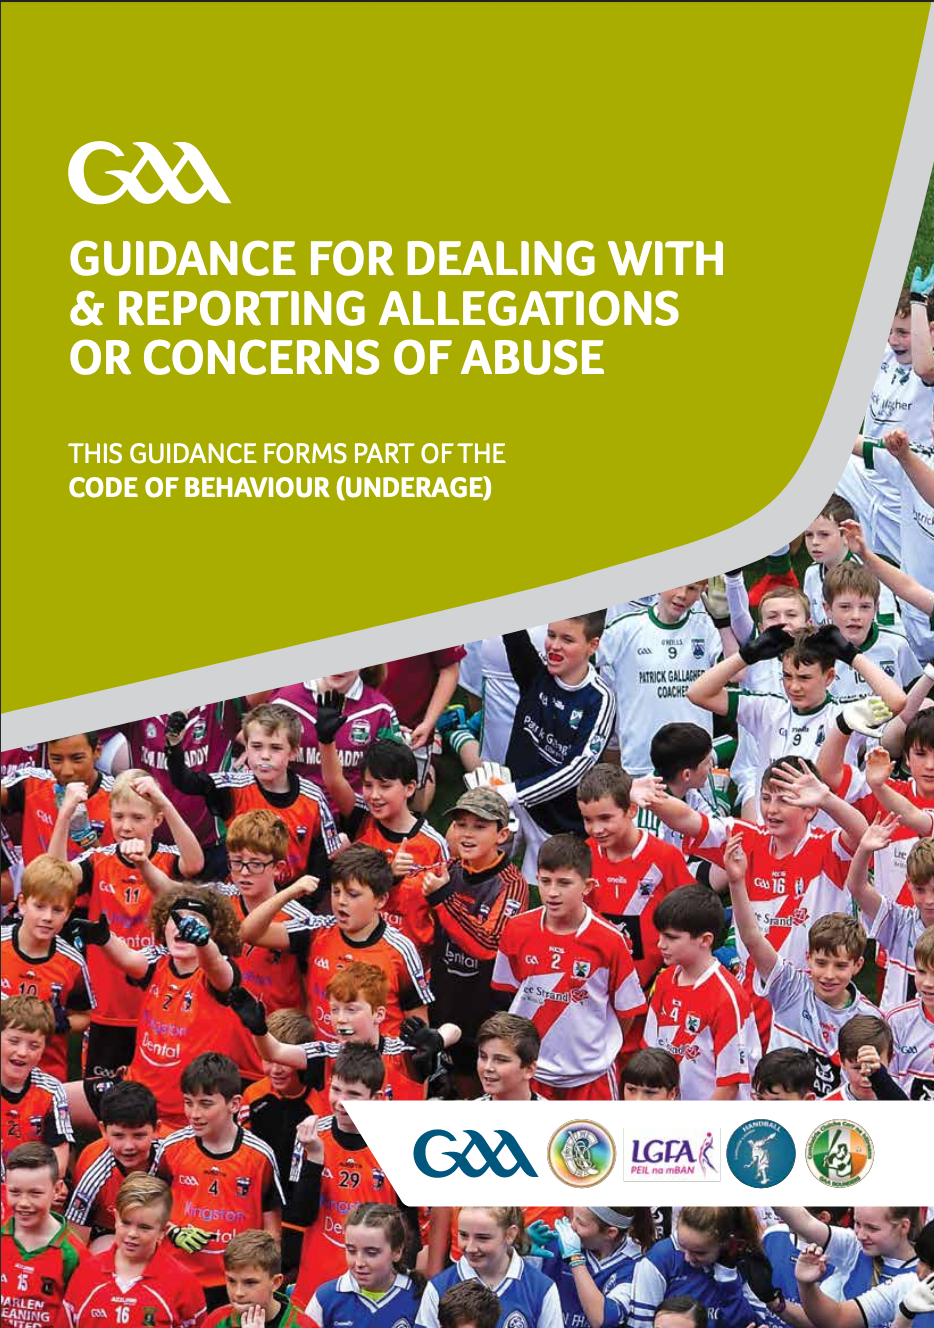 Guidance for Dealing with & Reporting Allegations and Concerns of Abuse.